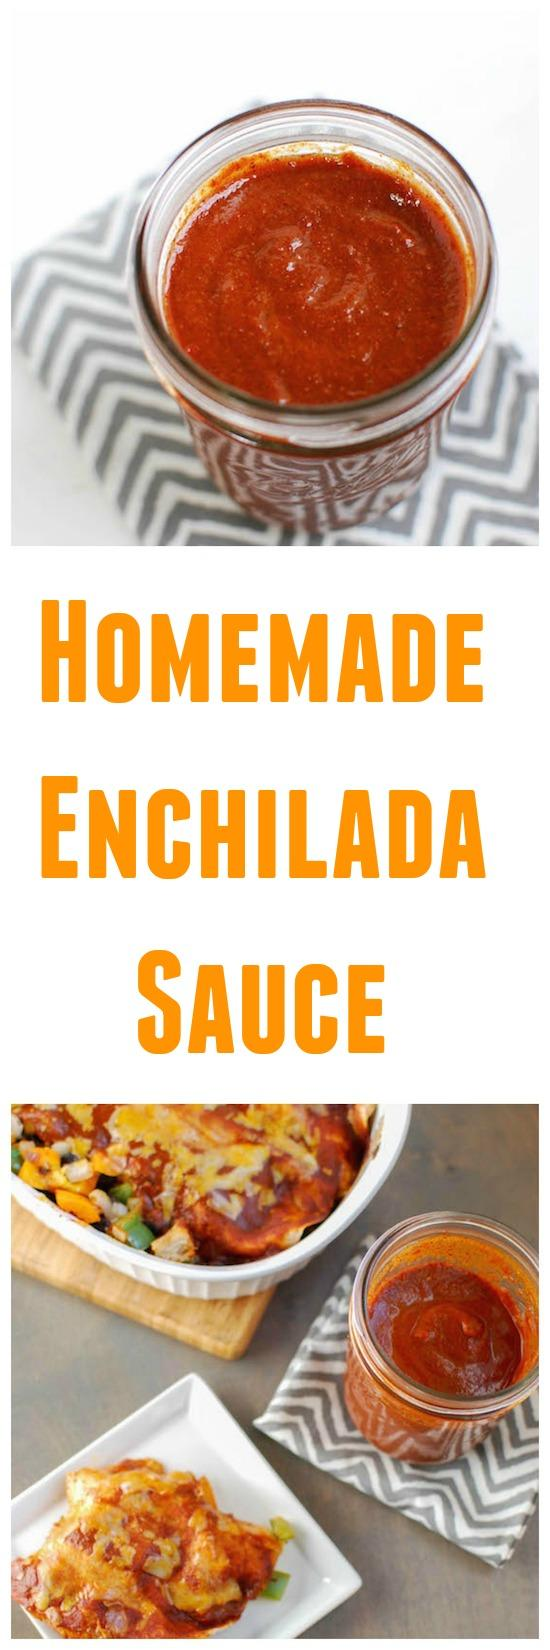 This low-sodium Homemade Enchilada Sauce is healthier and more flavorful than store-bought. Make a batch next time Mexican night is on the dinner menu!